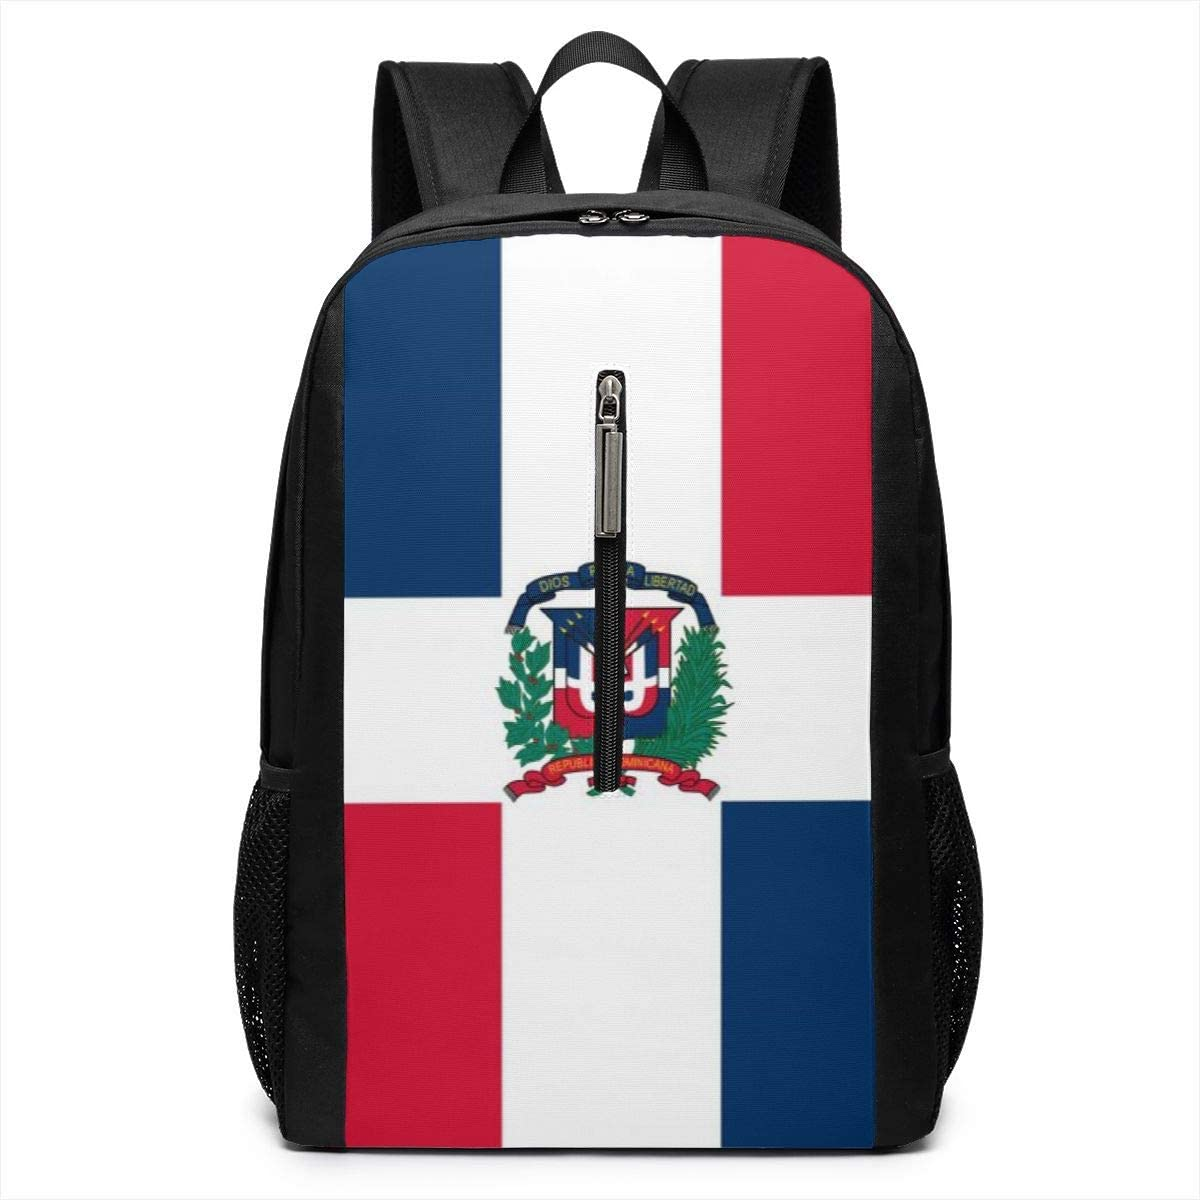 Casual Daypack for Women Men Travel School Backpacks Dominican Republic Flag Laptops Shoulder Bag College Notebook Computer Bags Multipurpose Sports Fitness Daypacks for Camping 17 Inch